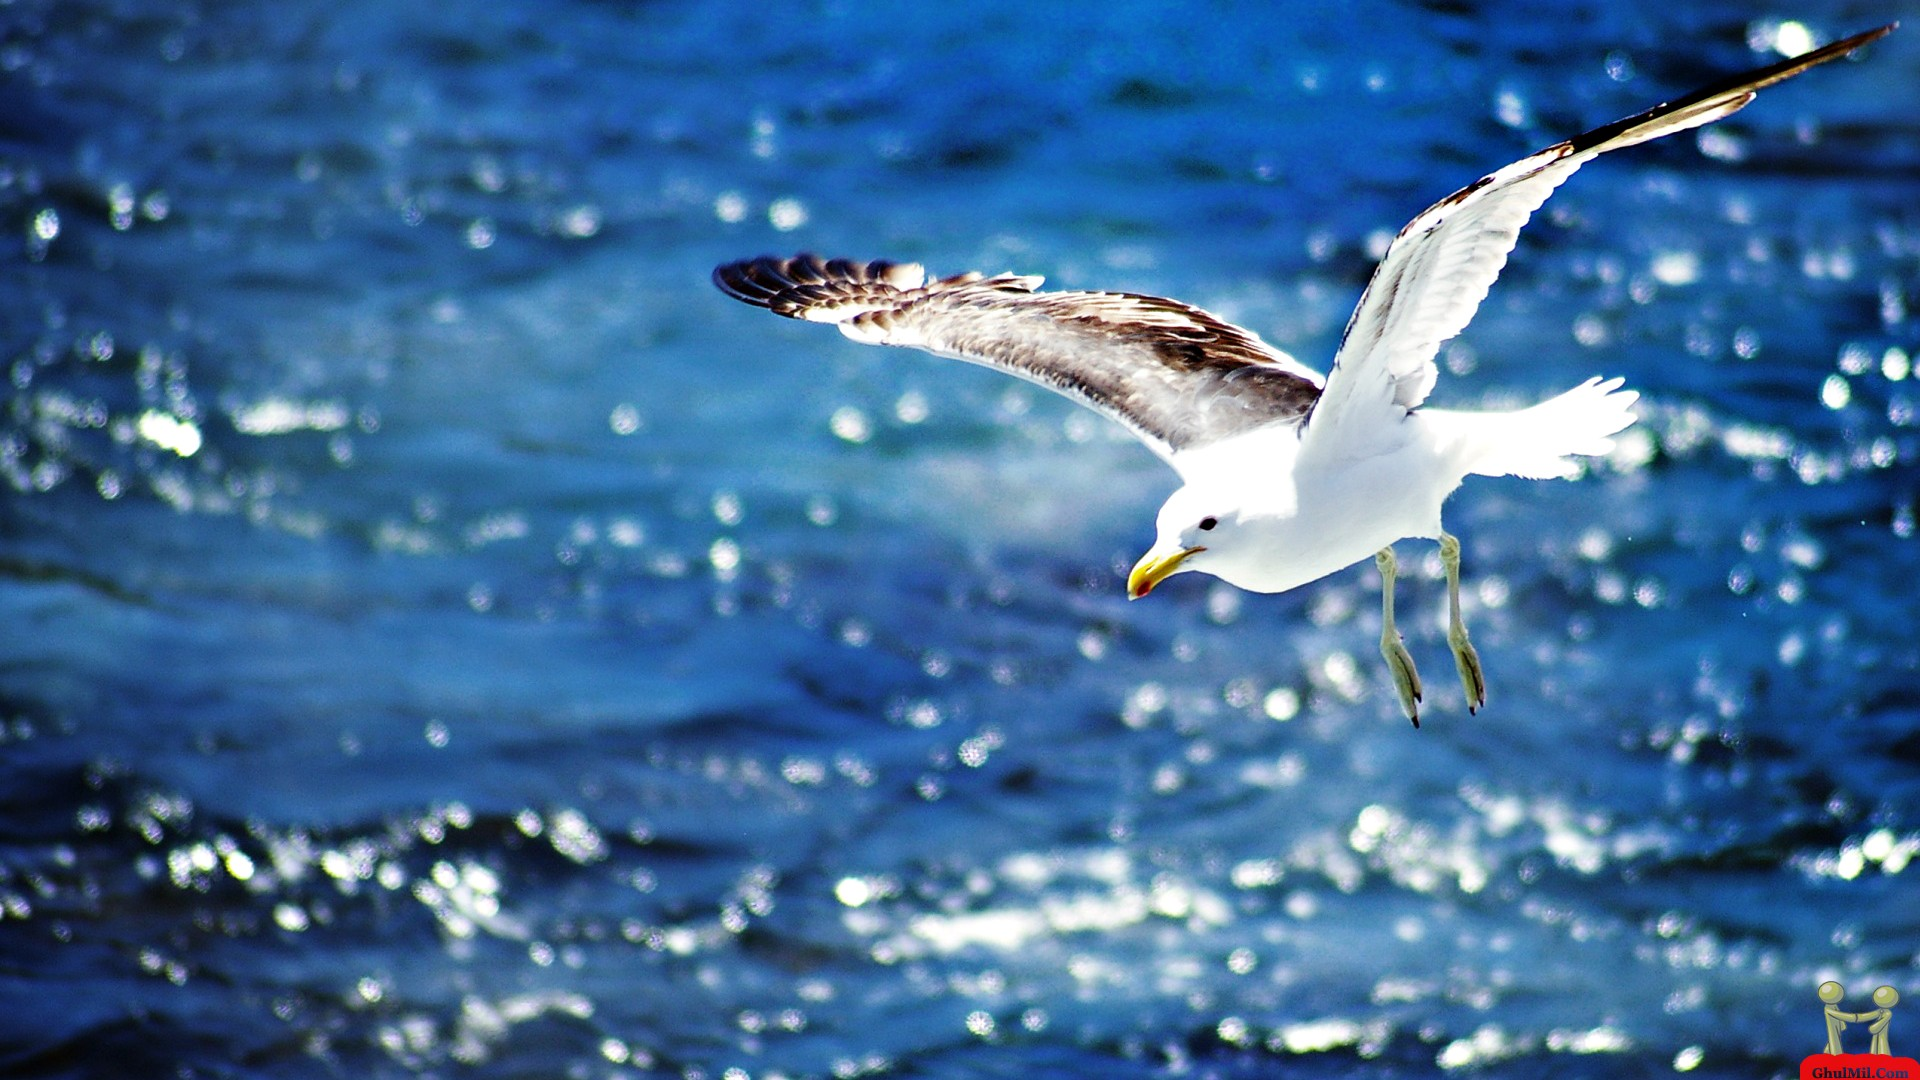 Freedom Birds Flying Hd Wallpaper Bird: Seagull Flying On The Beach New HD Wallpapers